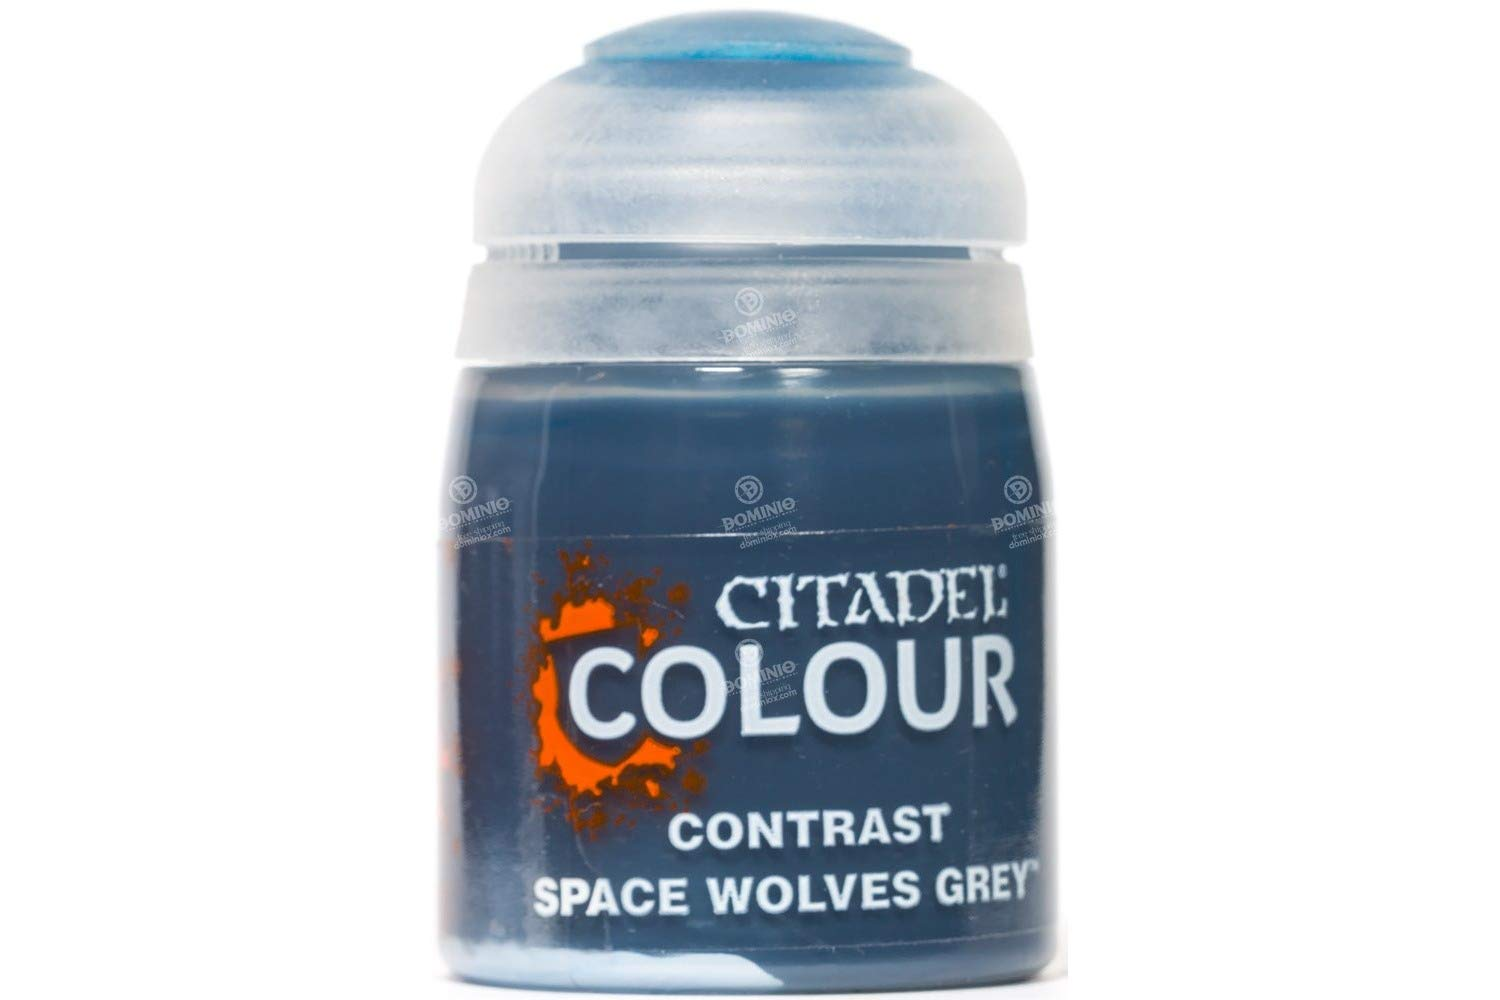 Space Wolves Grey (Contrast) | Murphy's Vault